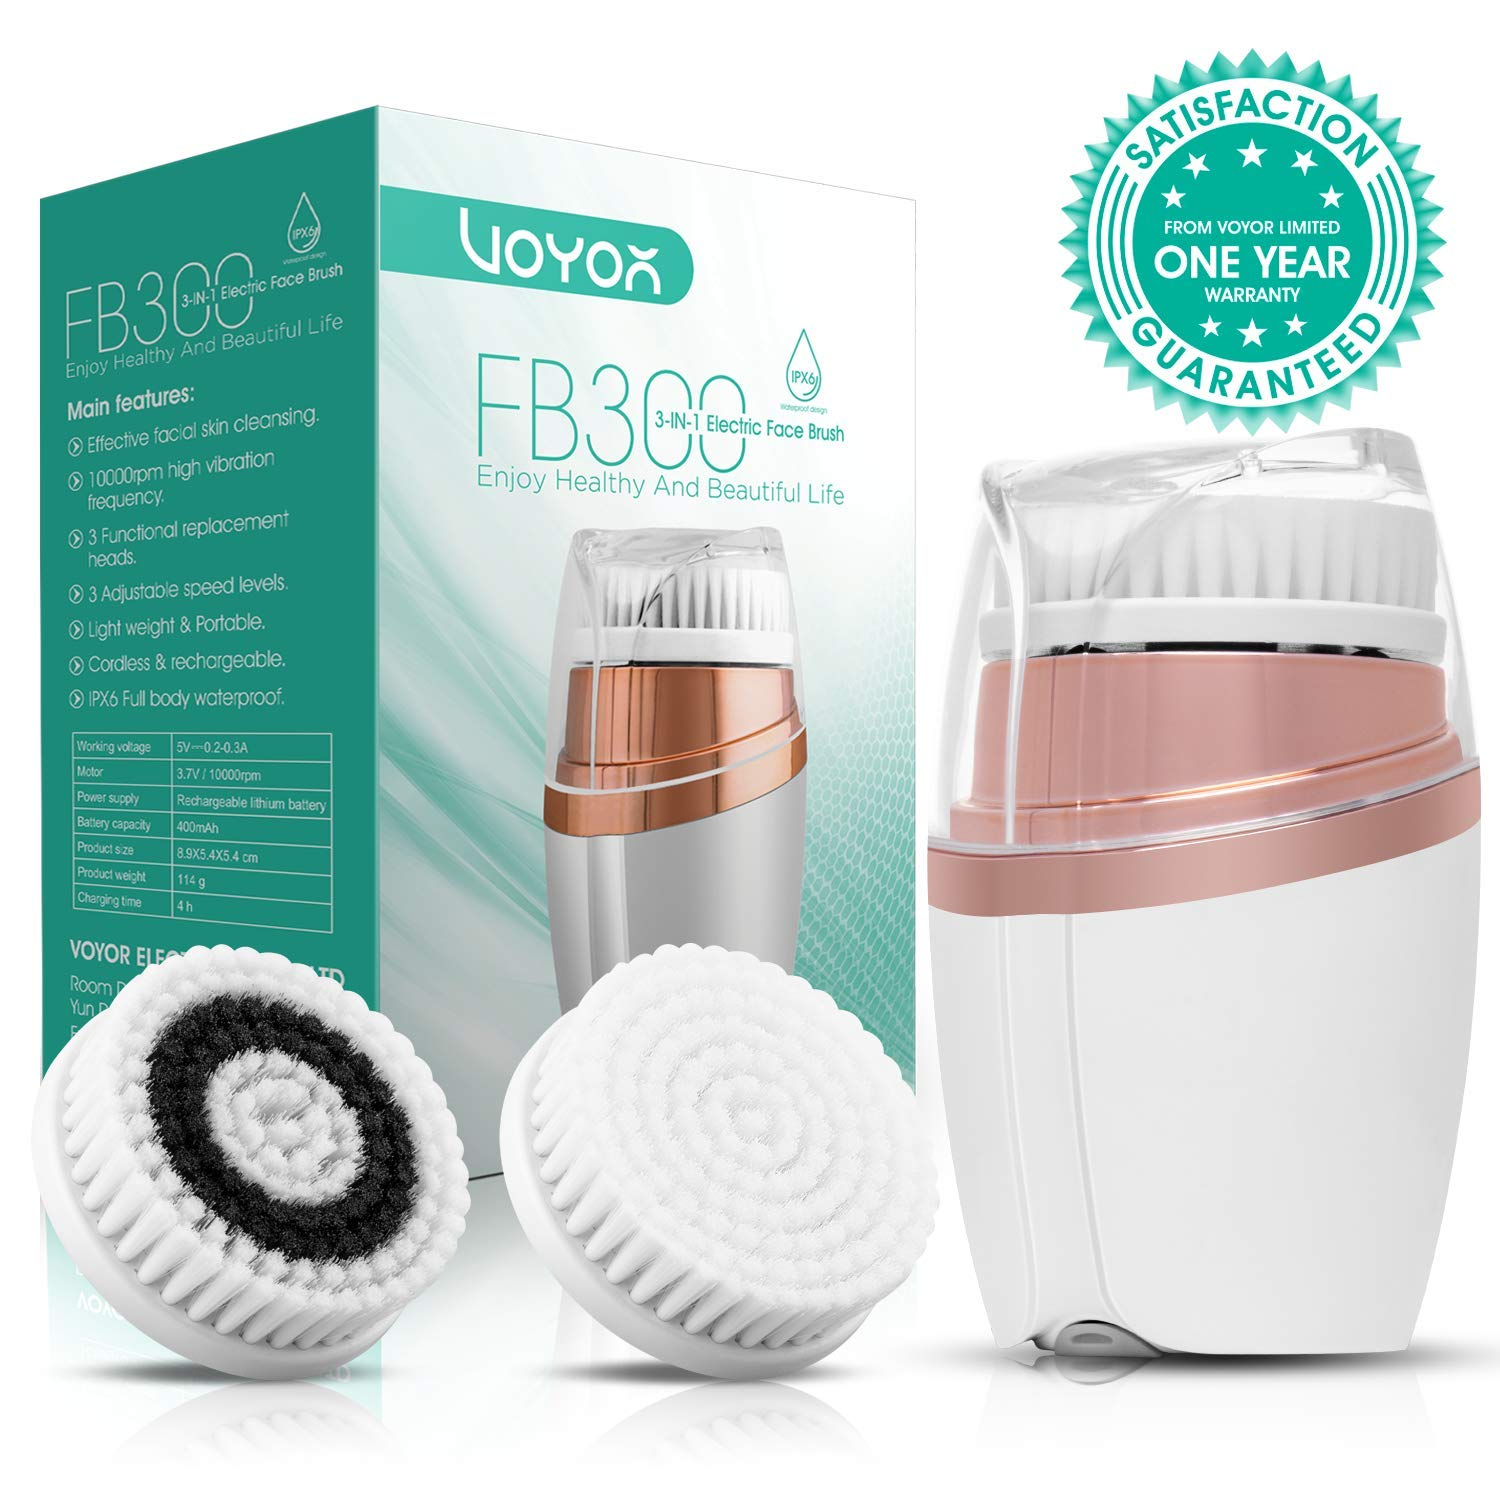 VOYOR Face Brush Rechargeable Facial Cleansing Brush 3-in-1 Exfoliation Pore Minimizer, Makeup Remover Brush for Acne Blackhead Treatment Skin Care, IPX6 Waterproof FB300